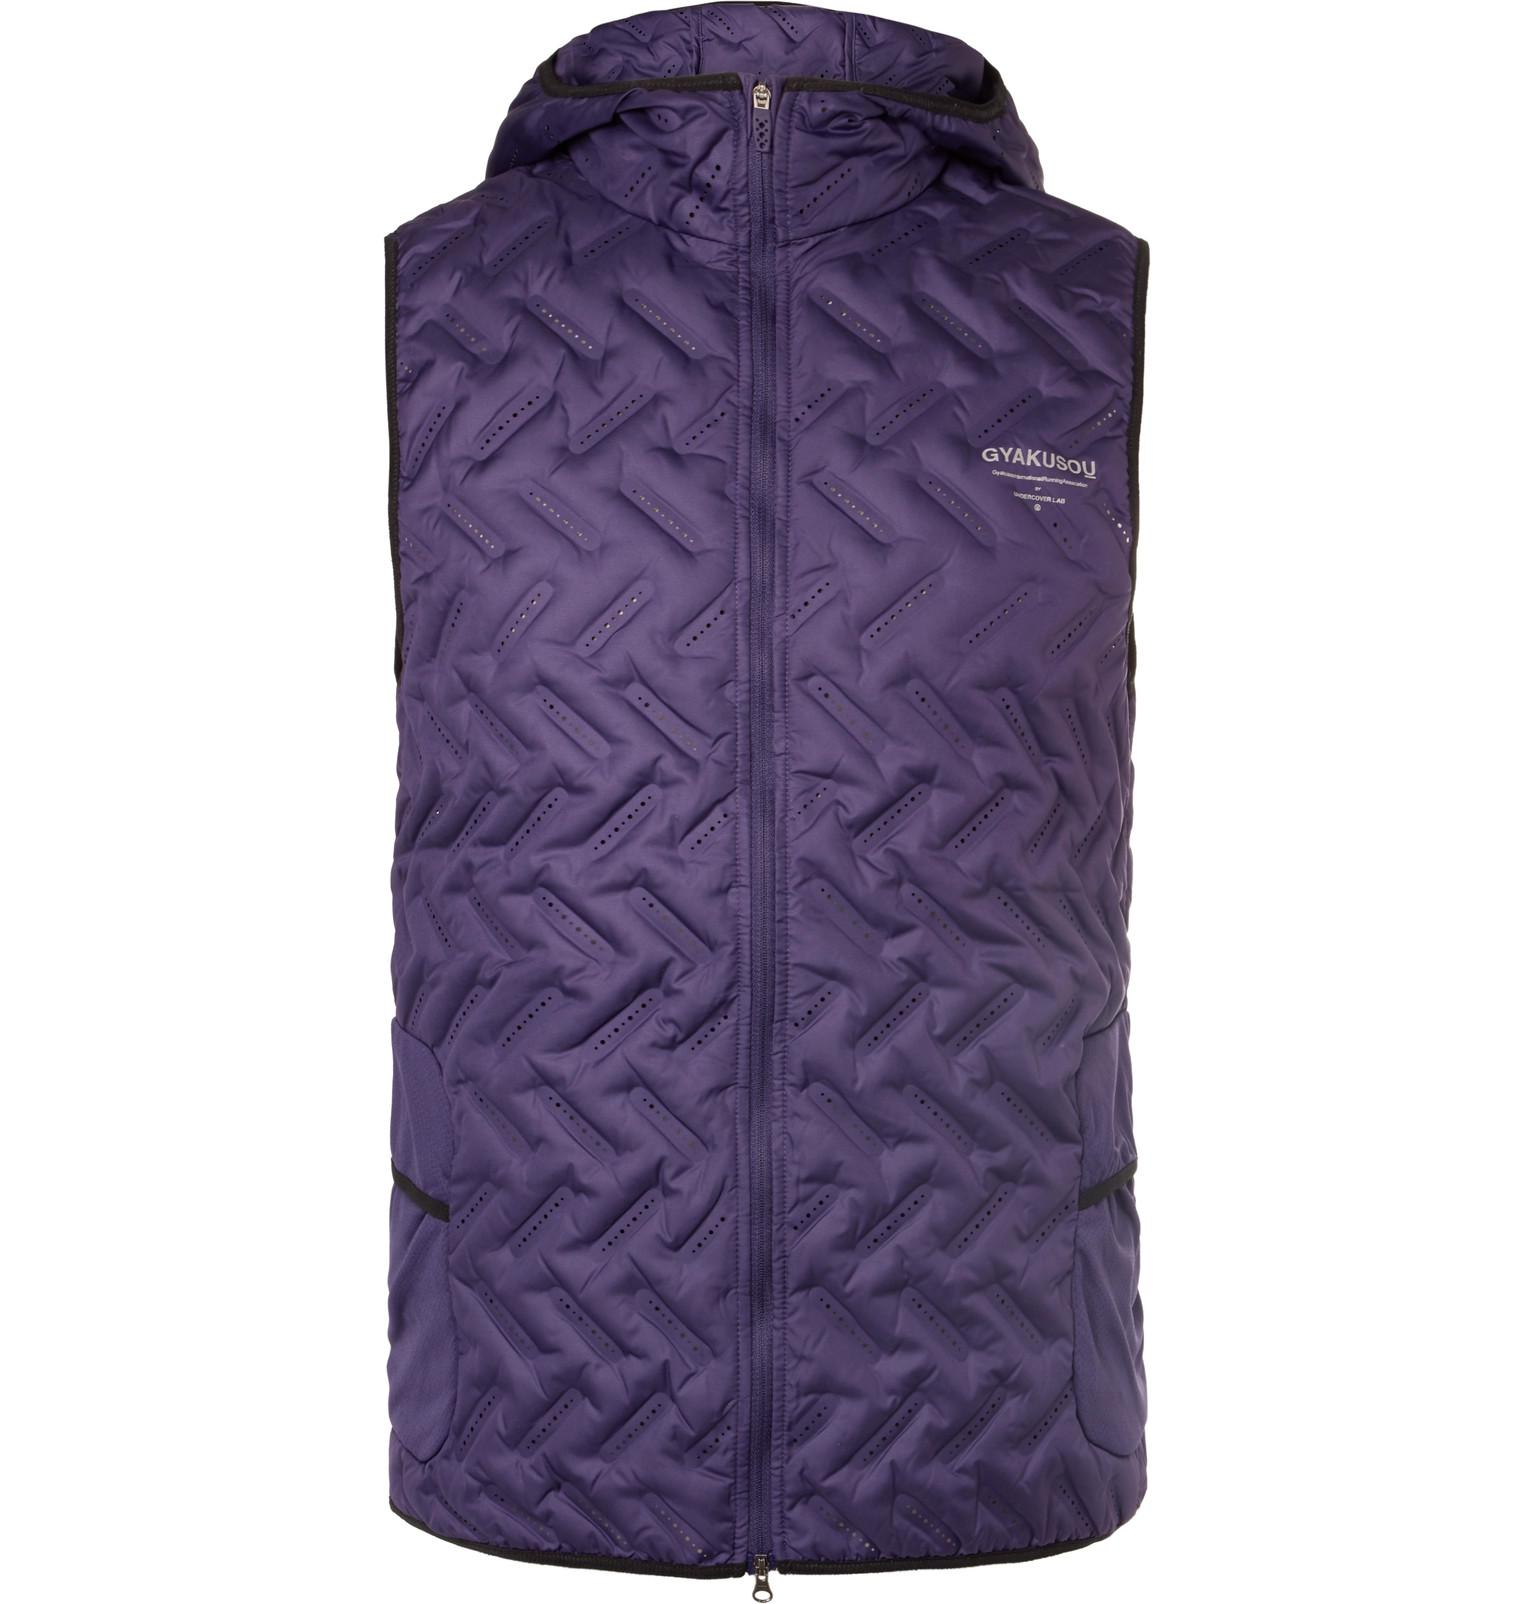 new concept 7a484 fdf83 Nike Nikelab Gyakusou Shell Down Gilet in Purple for Men - Lyst